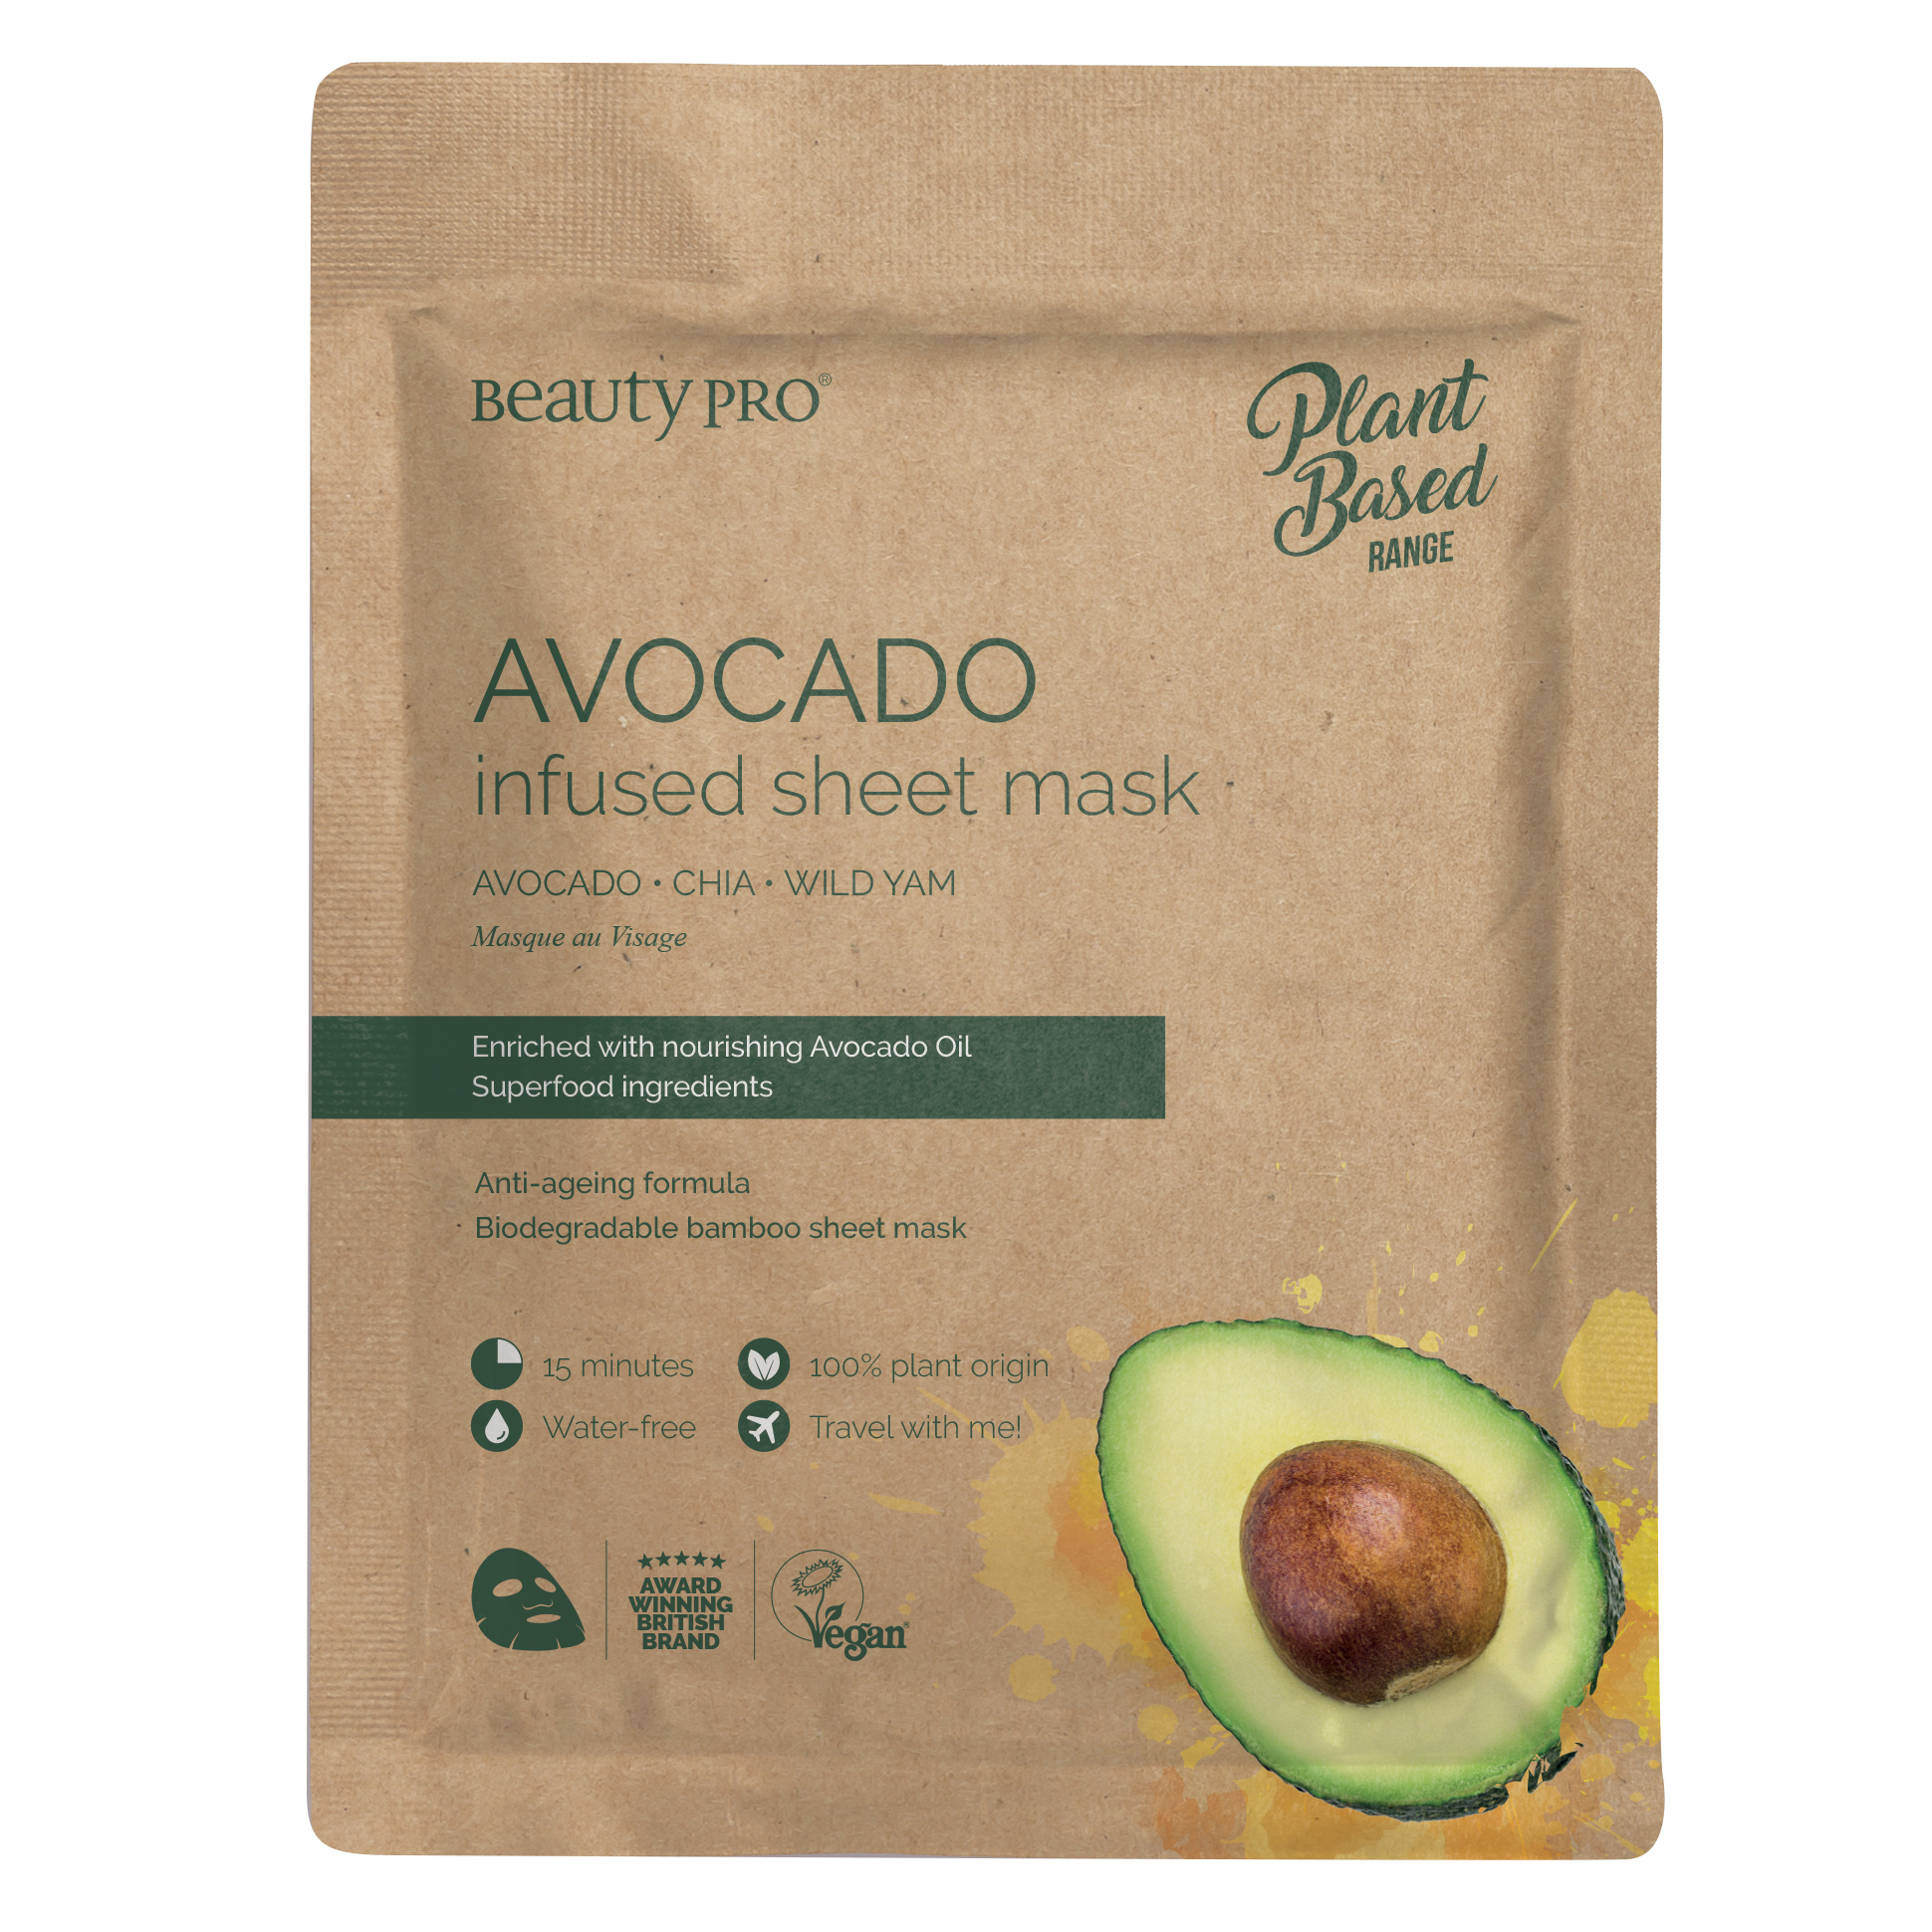 AVOCADO Infused Sheet Mask 22ml